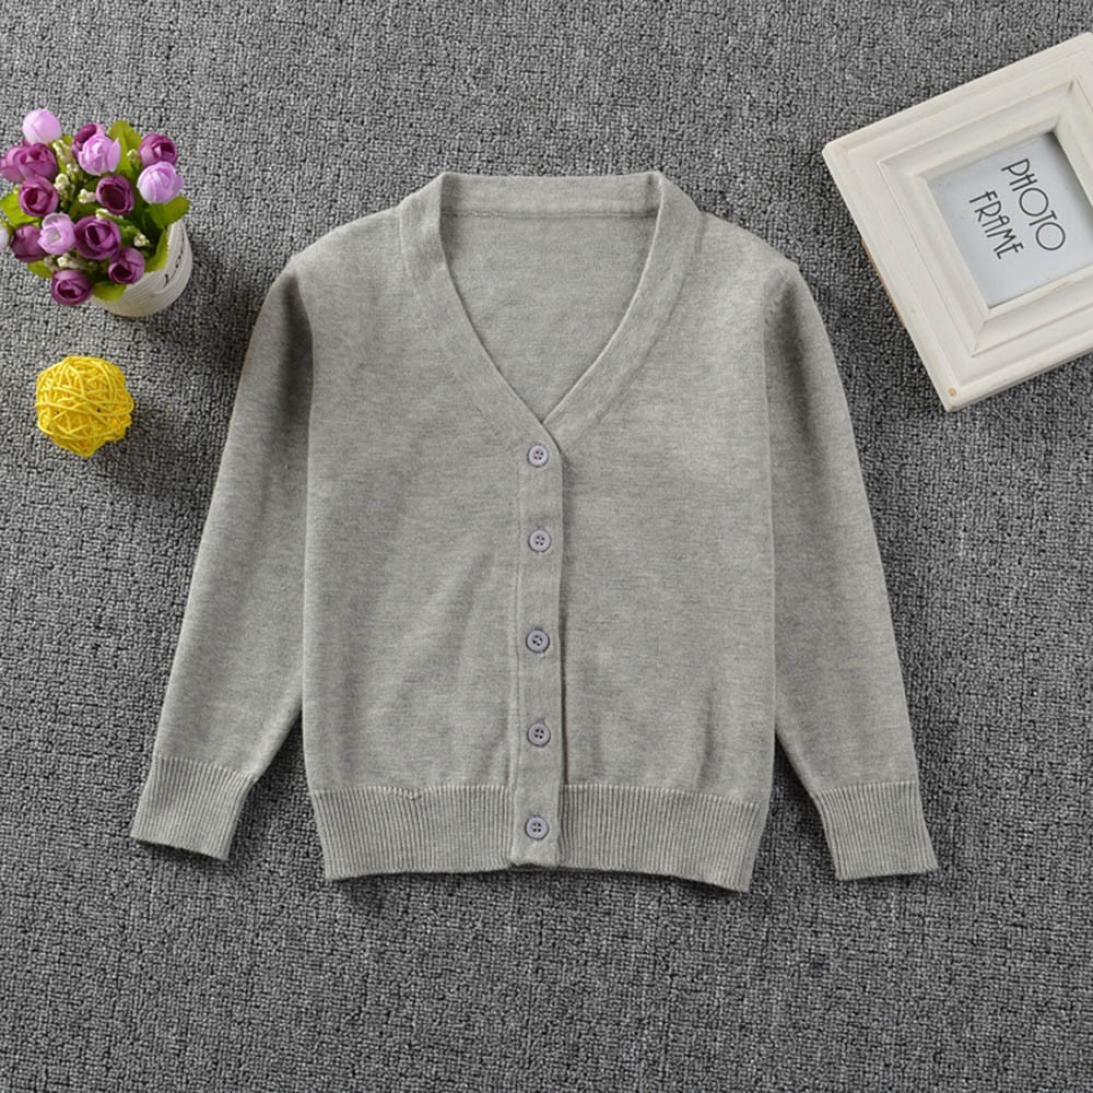 pretty.W Winter Clothes Coat Tops Knitted Colorful Solid Cardigan Sweater for Toddler Kid Boys Girls